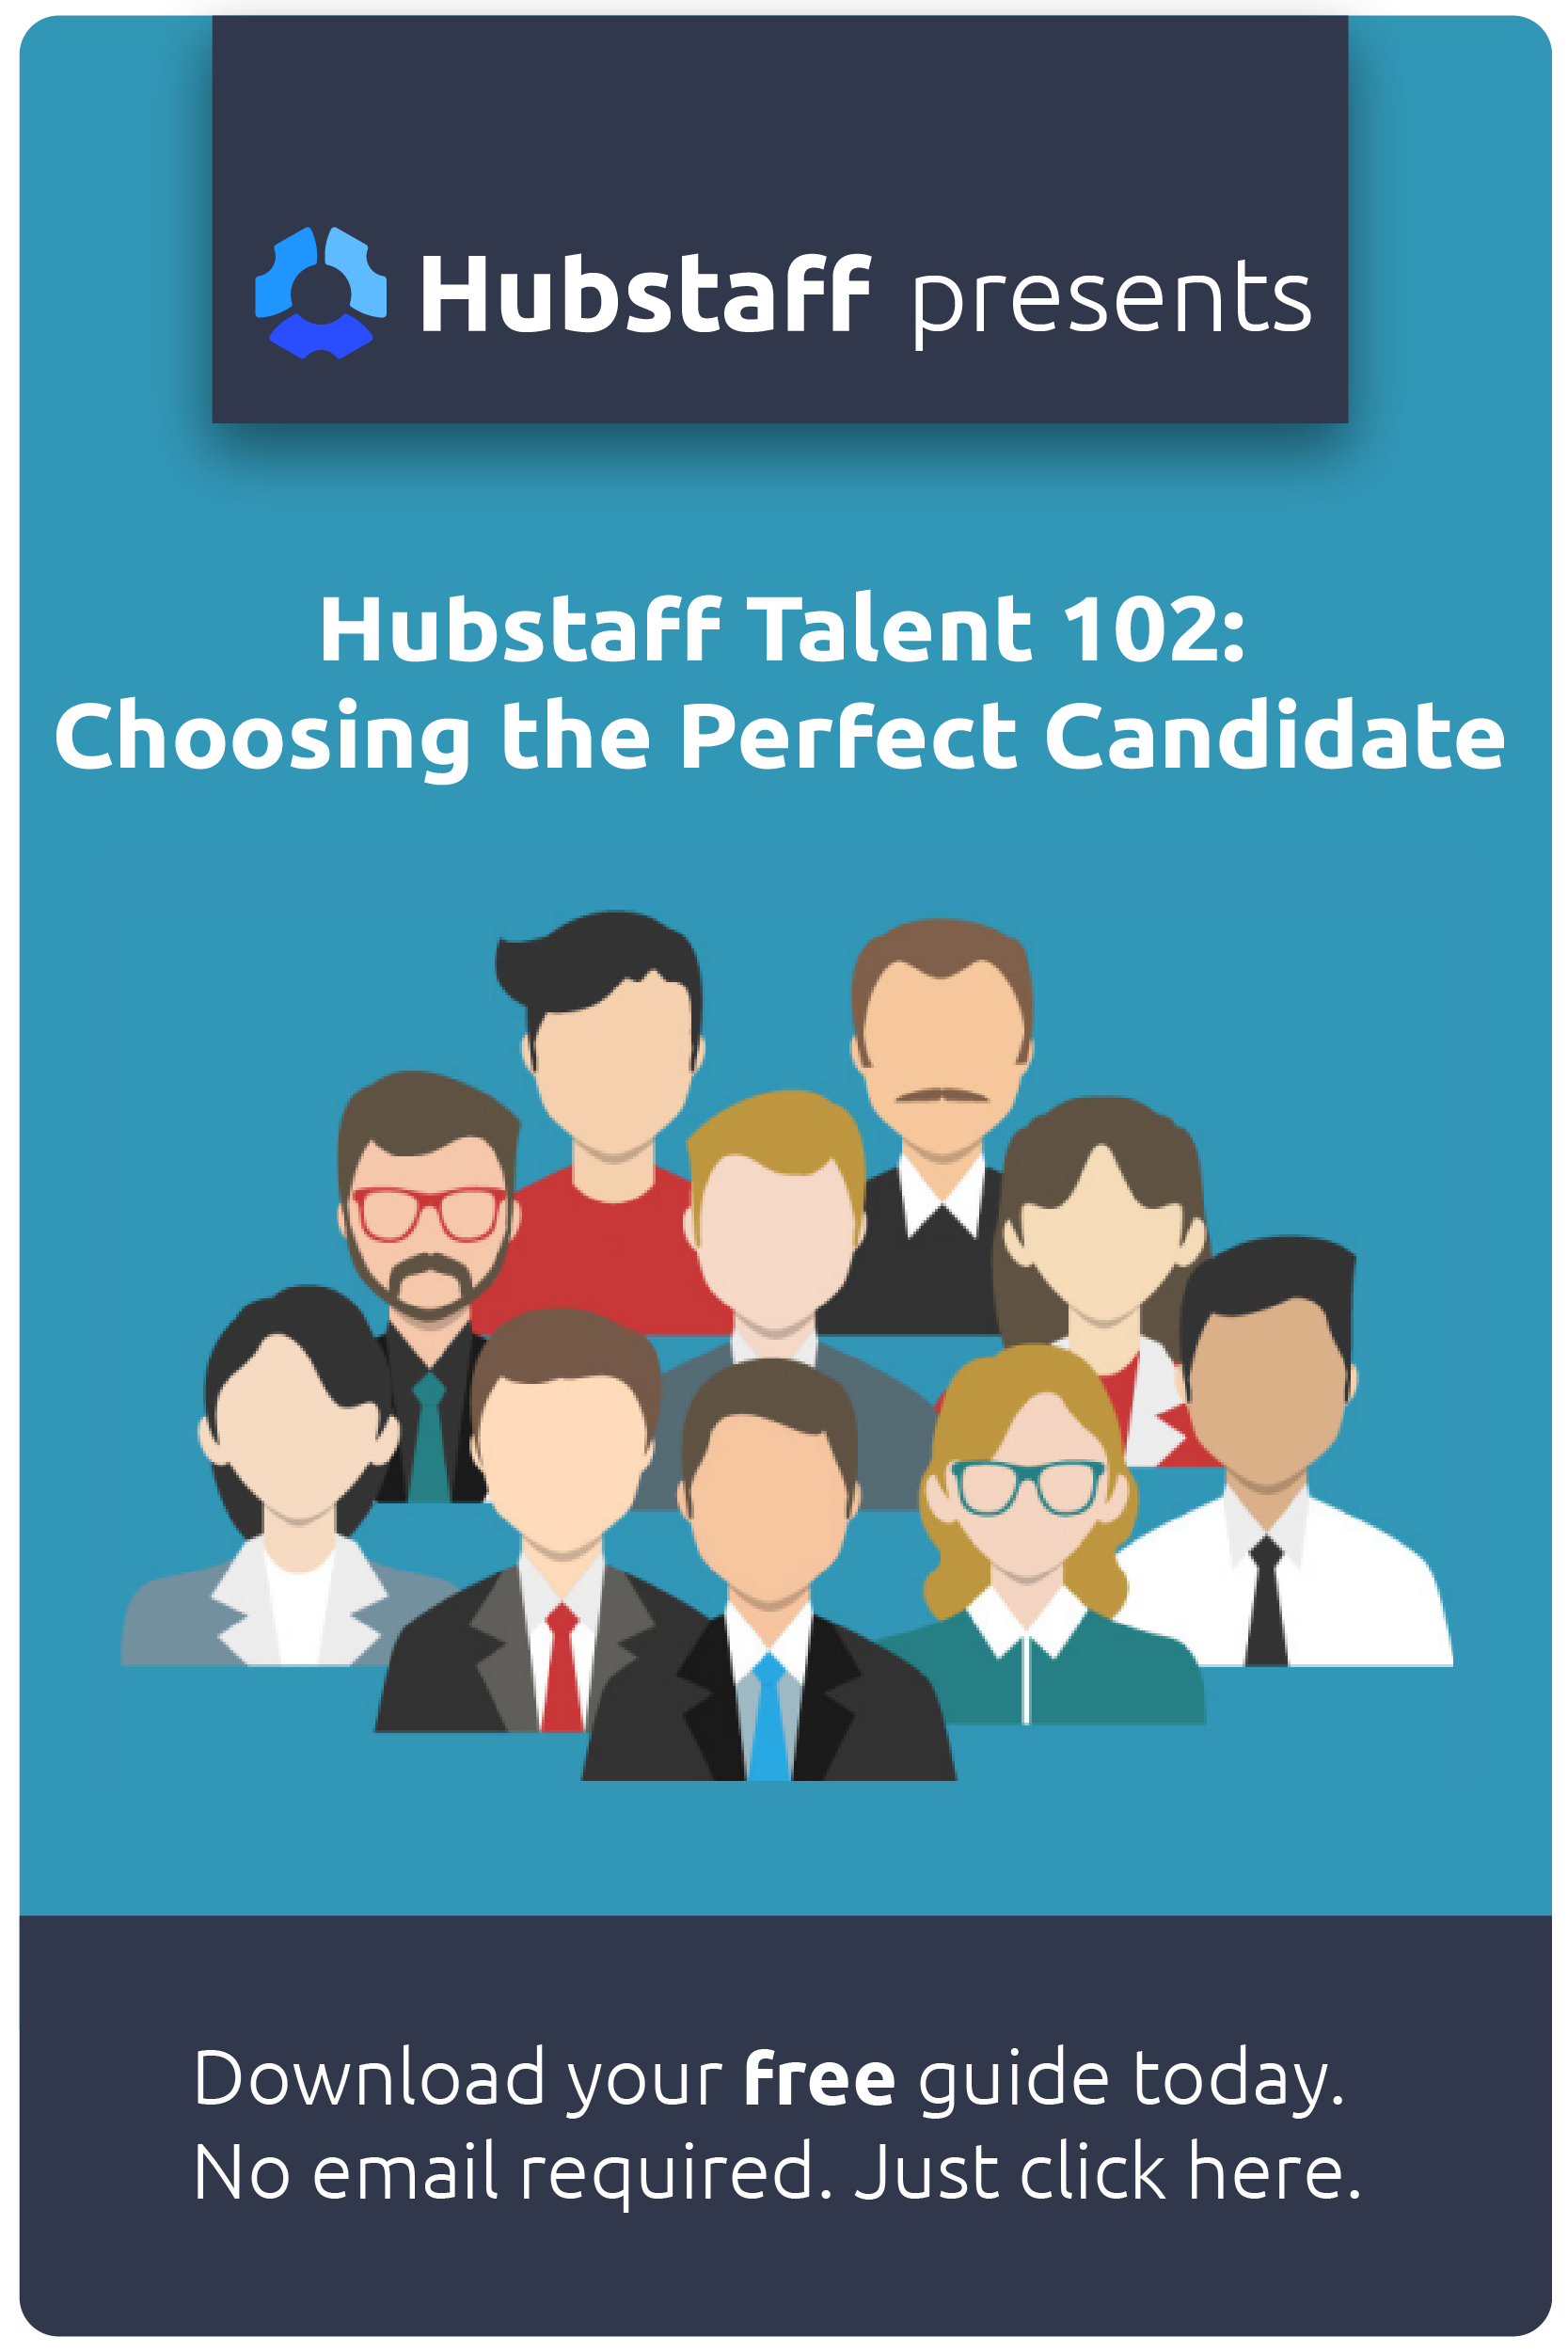 Hubstaff Talent 102: Choosing the Perfect Candidate